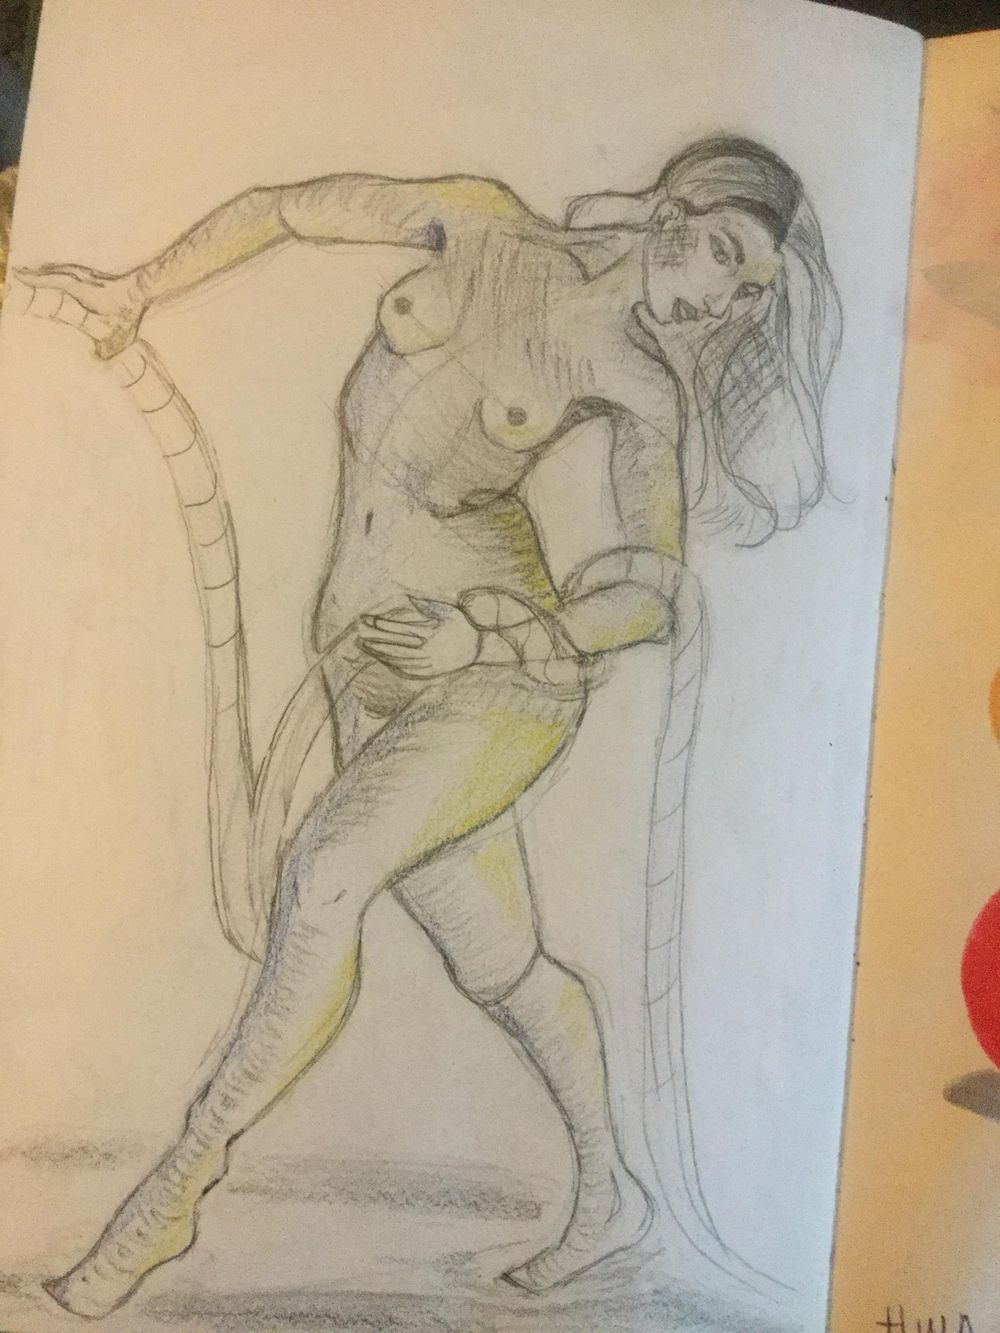 First time drawing a figure - image 4 - student project